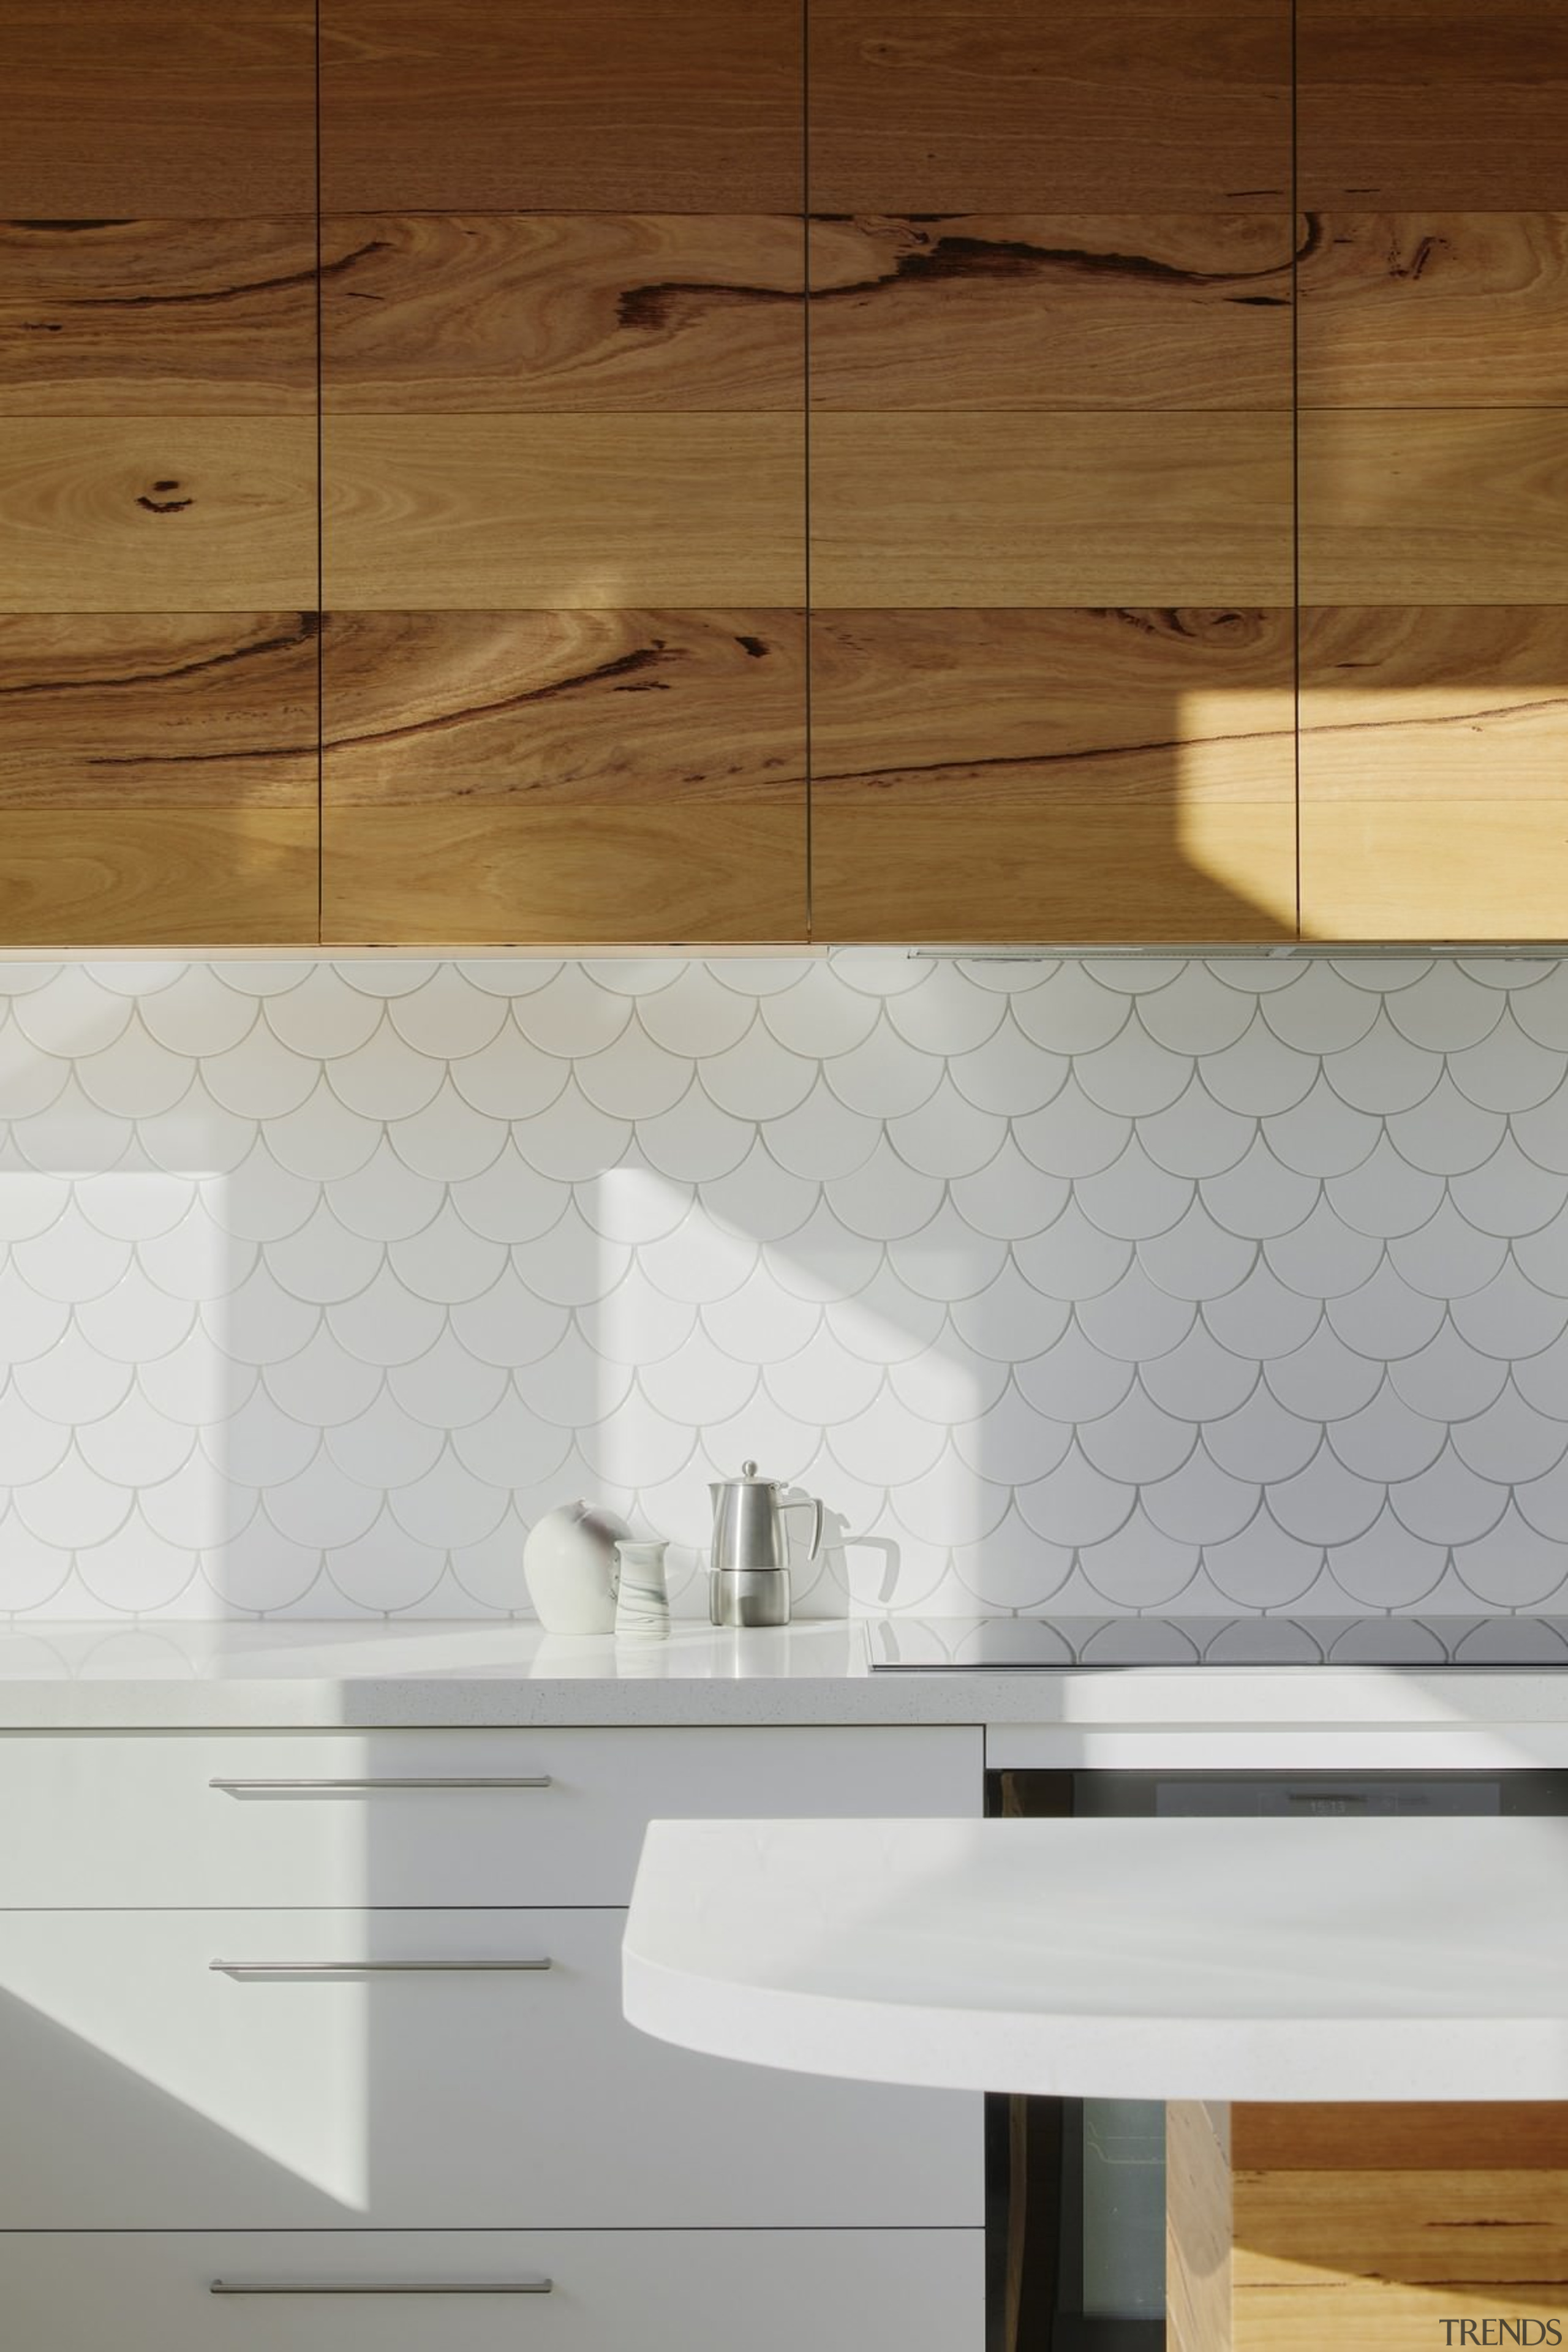 Soft touches line the new living space, including angle, architecture, cabinetry, ceramic, countertop, floor, flooring, hardwood, interior design, plywood, product design, sink, tap, tile, wall, wood, wood flooring, wood stain, brown, gray